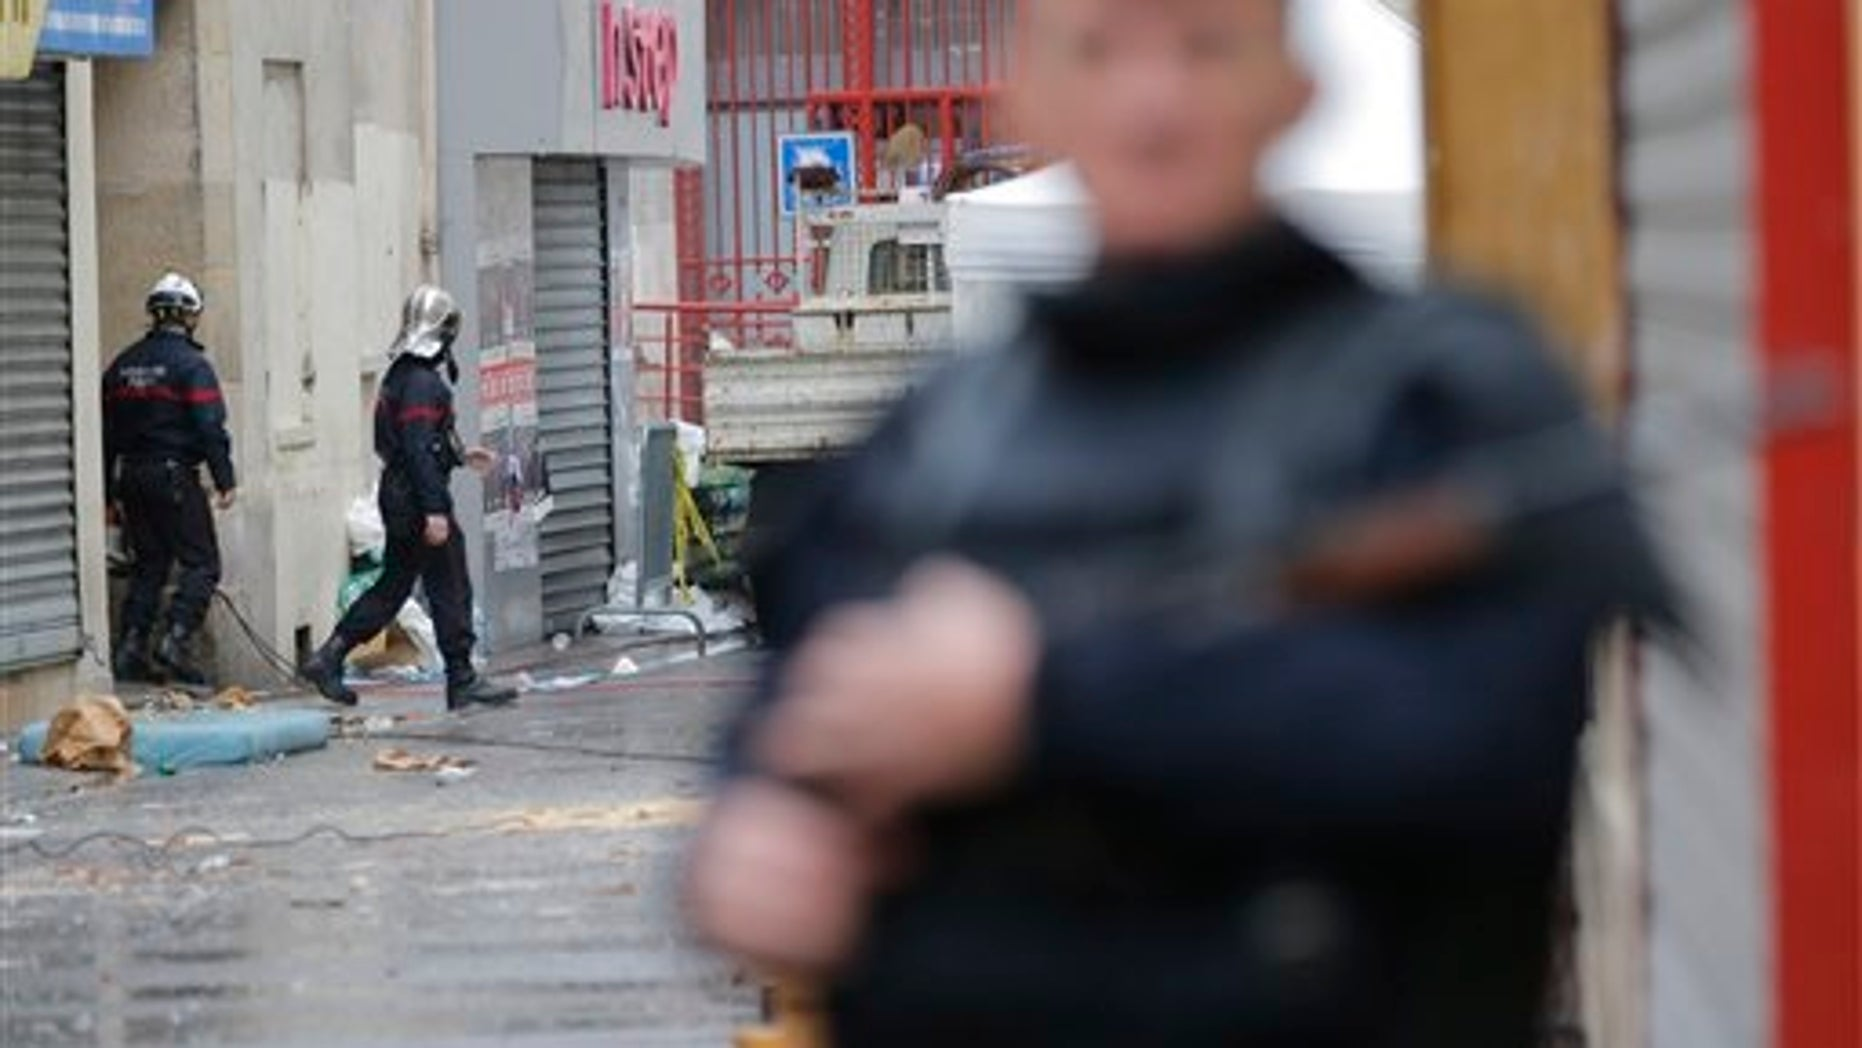 Firemen, left, leave the building of Wednesday's raid on an apartment in Paris suburb Saint-Denis, Thursday Nov.19, 2015. With France still reeling from last week's deadly attacks in Paris, Prime Minister Manuel Valls warned Thursday that Islamic extremists might at some point use chemical or biological weapons, and urged lawmakers to extend a national state of emergency by three months. (AP Photo/Christophe Ena)